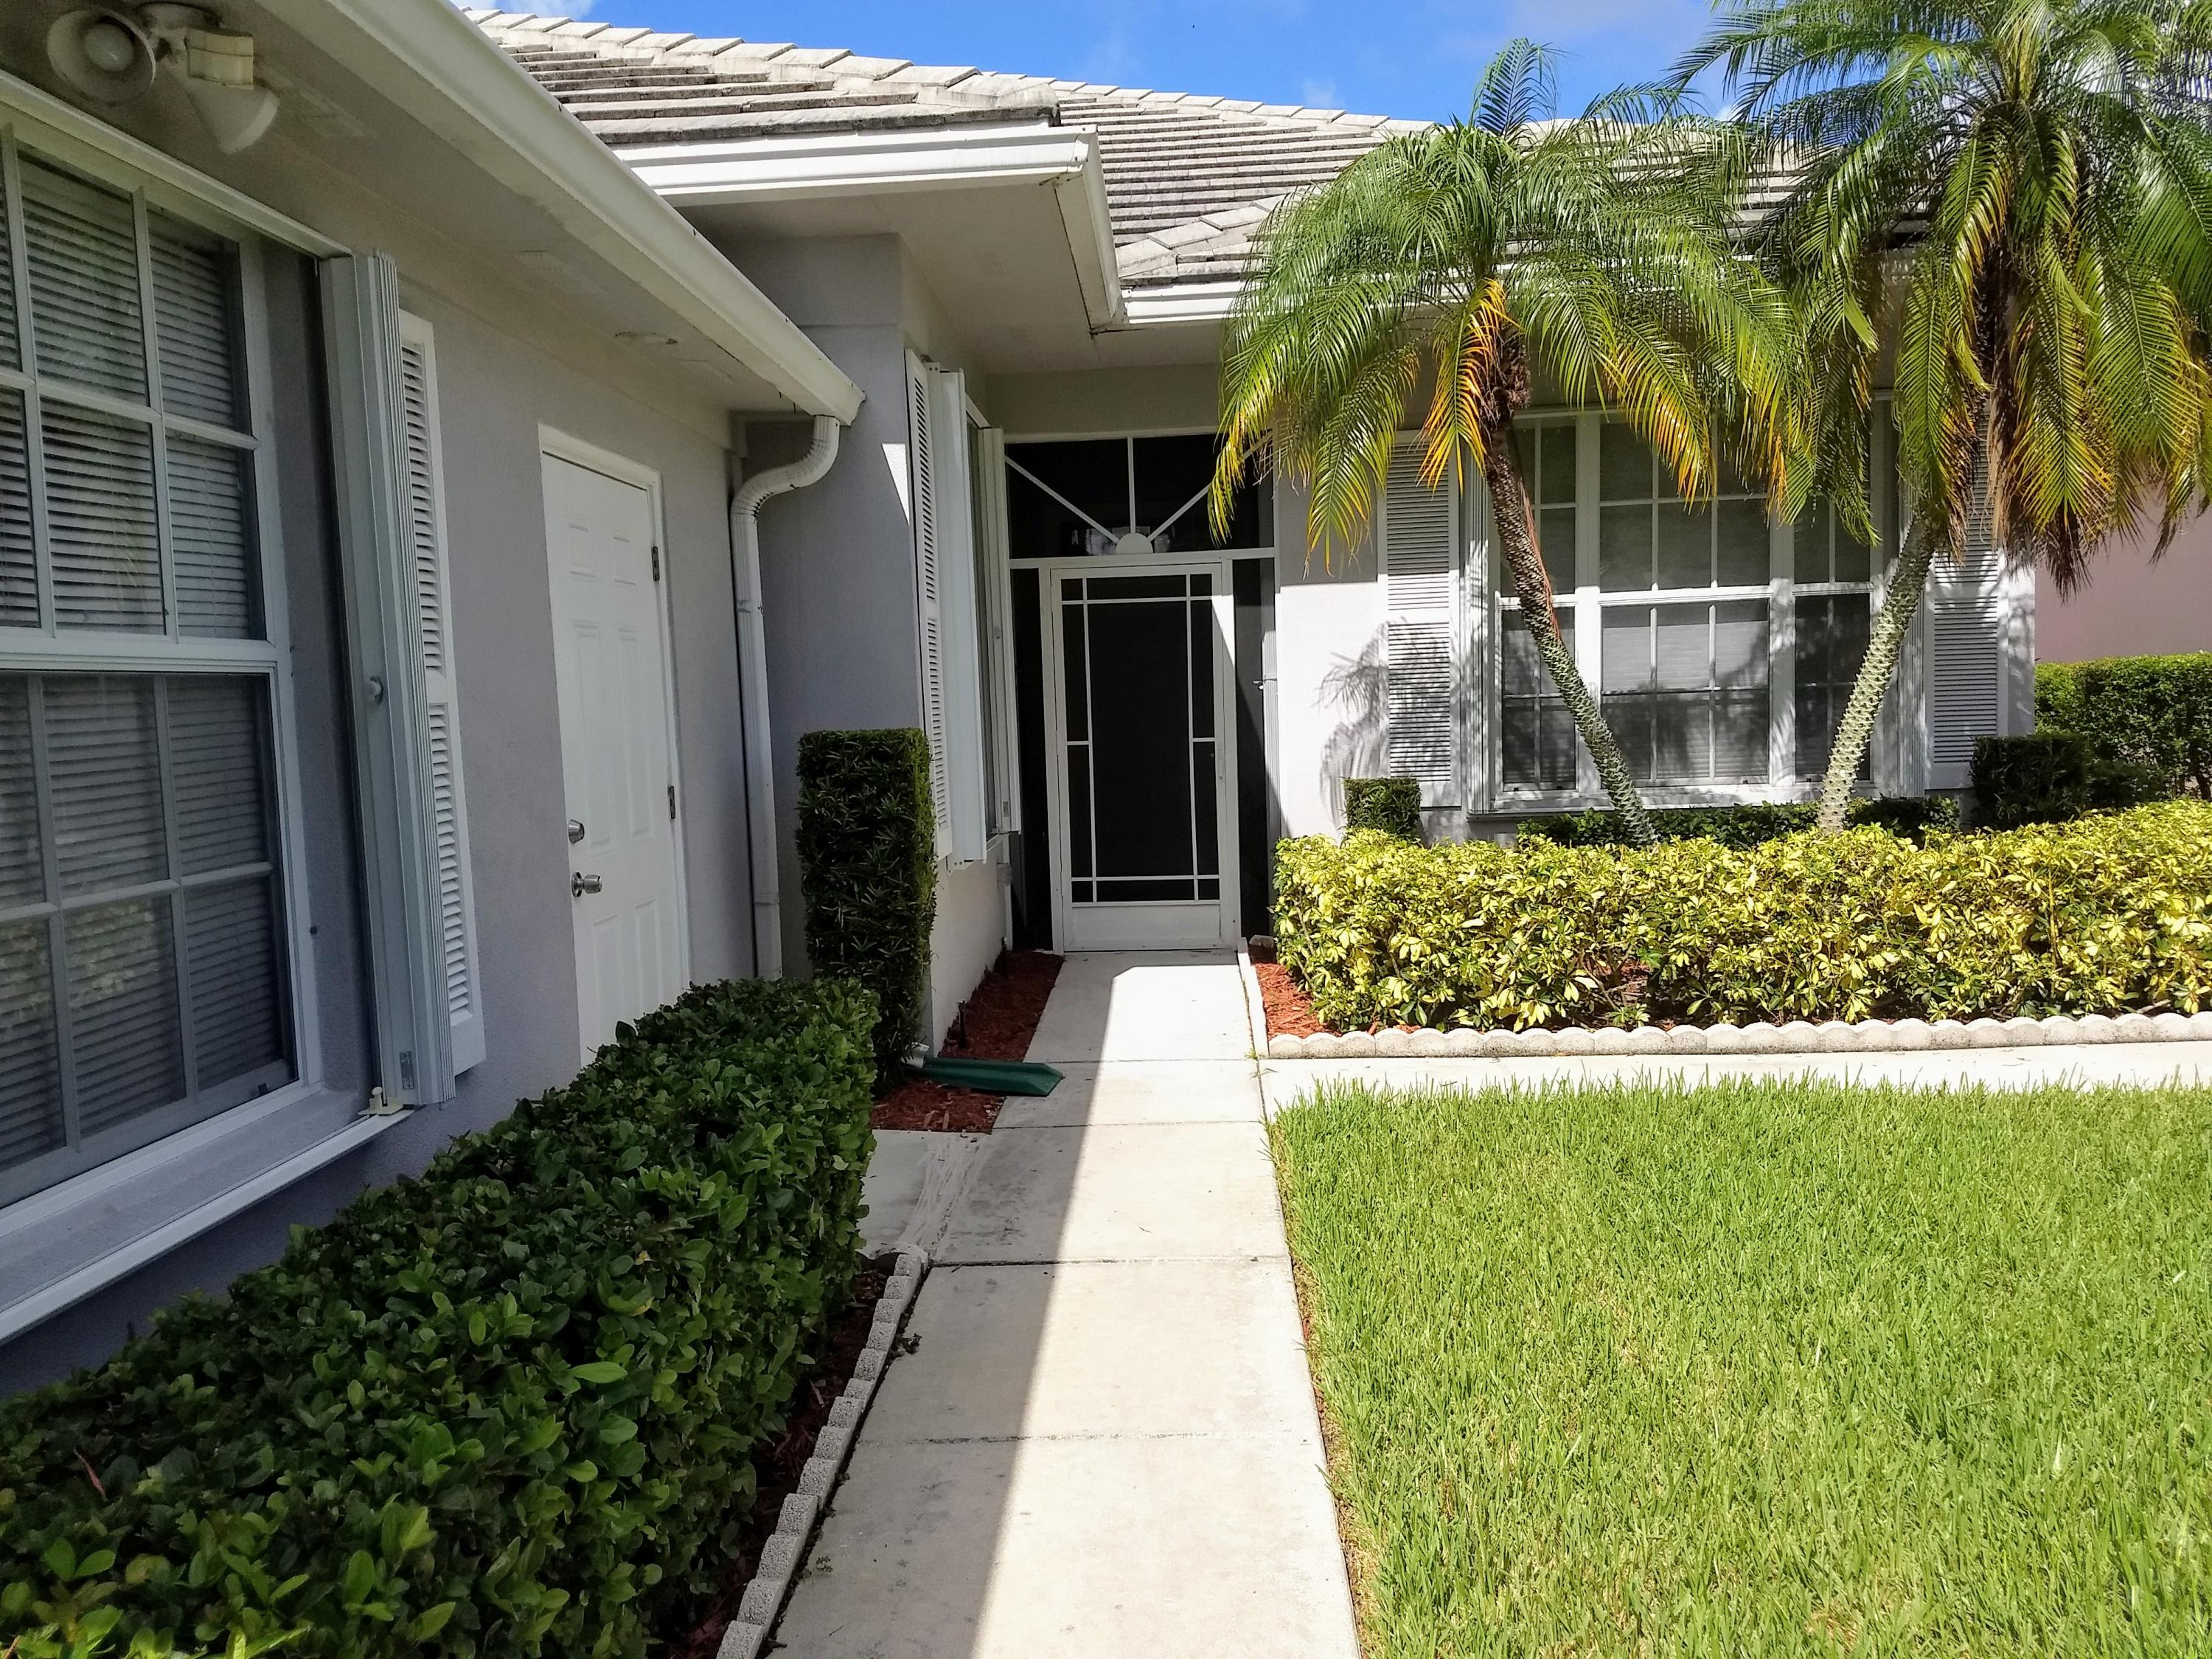 LAKES AT ST LUCIE WEST HOMES